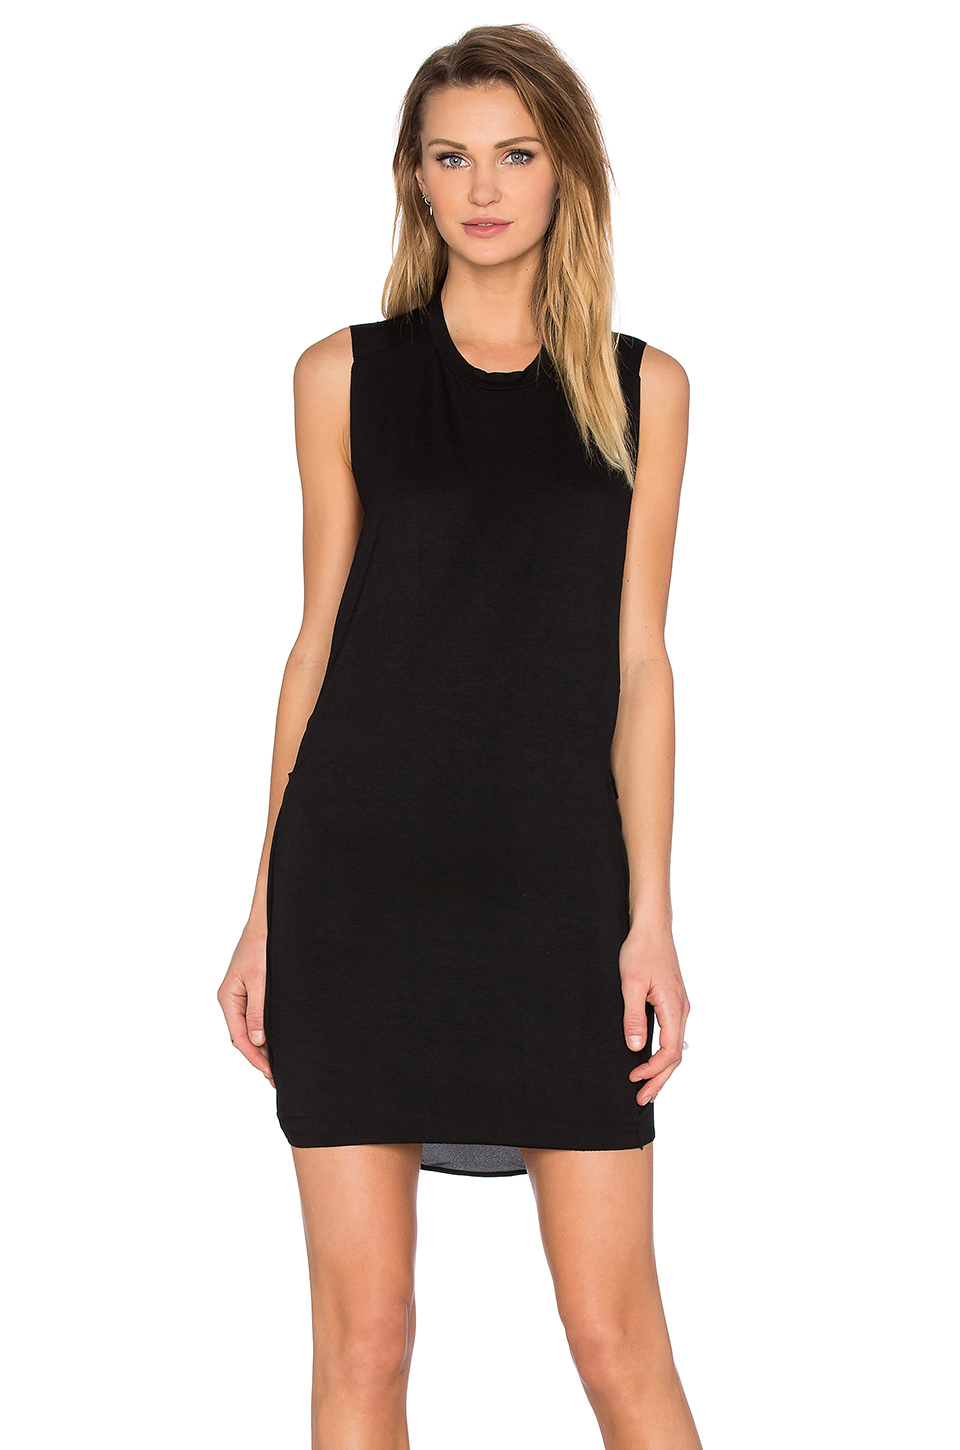 A black dress can be perfect for meeting with those important clients, going out for an evening with your significant other, going out to a special holiday party and more. Slip in to any one of these little black dresses and maurices knows that you will look fantastic.